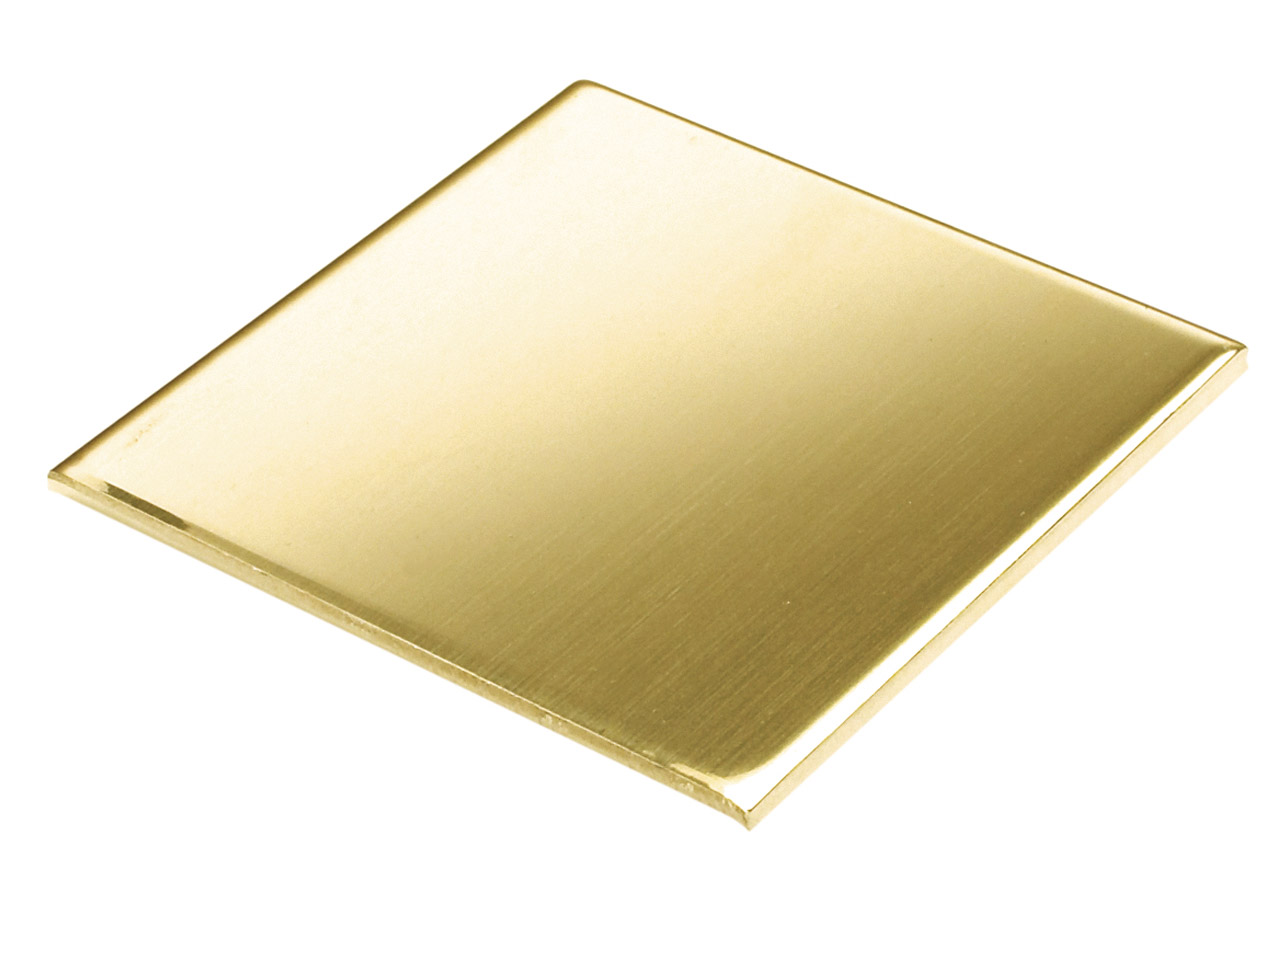 Brass Sheet 75x75x0.7mm